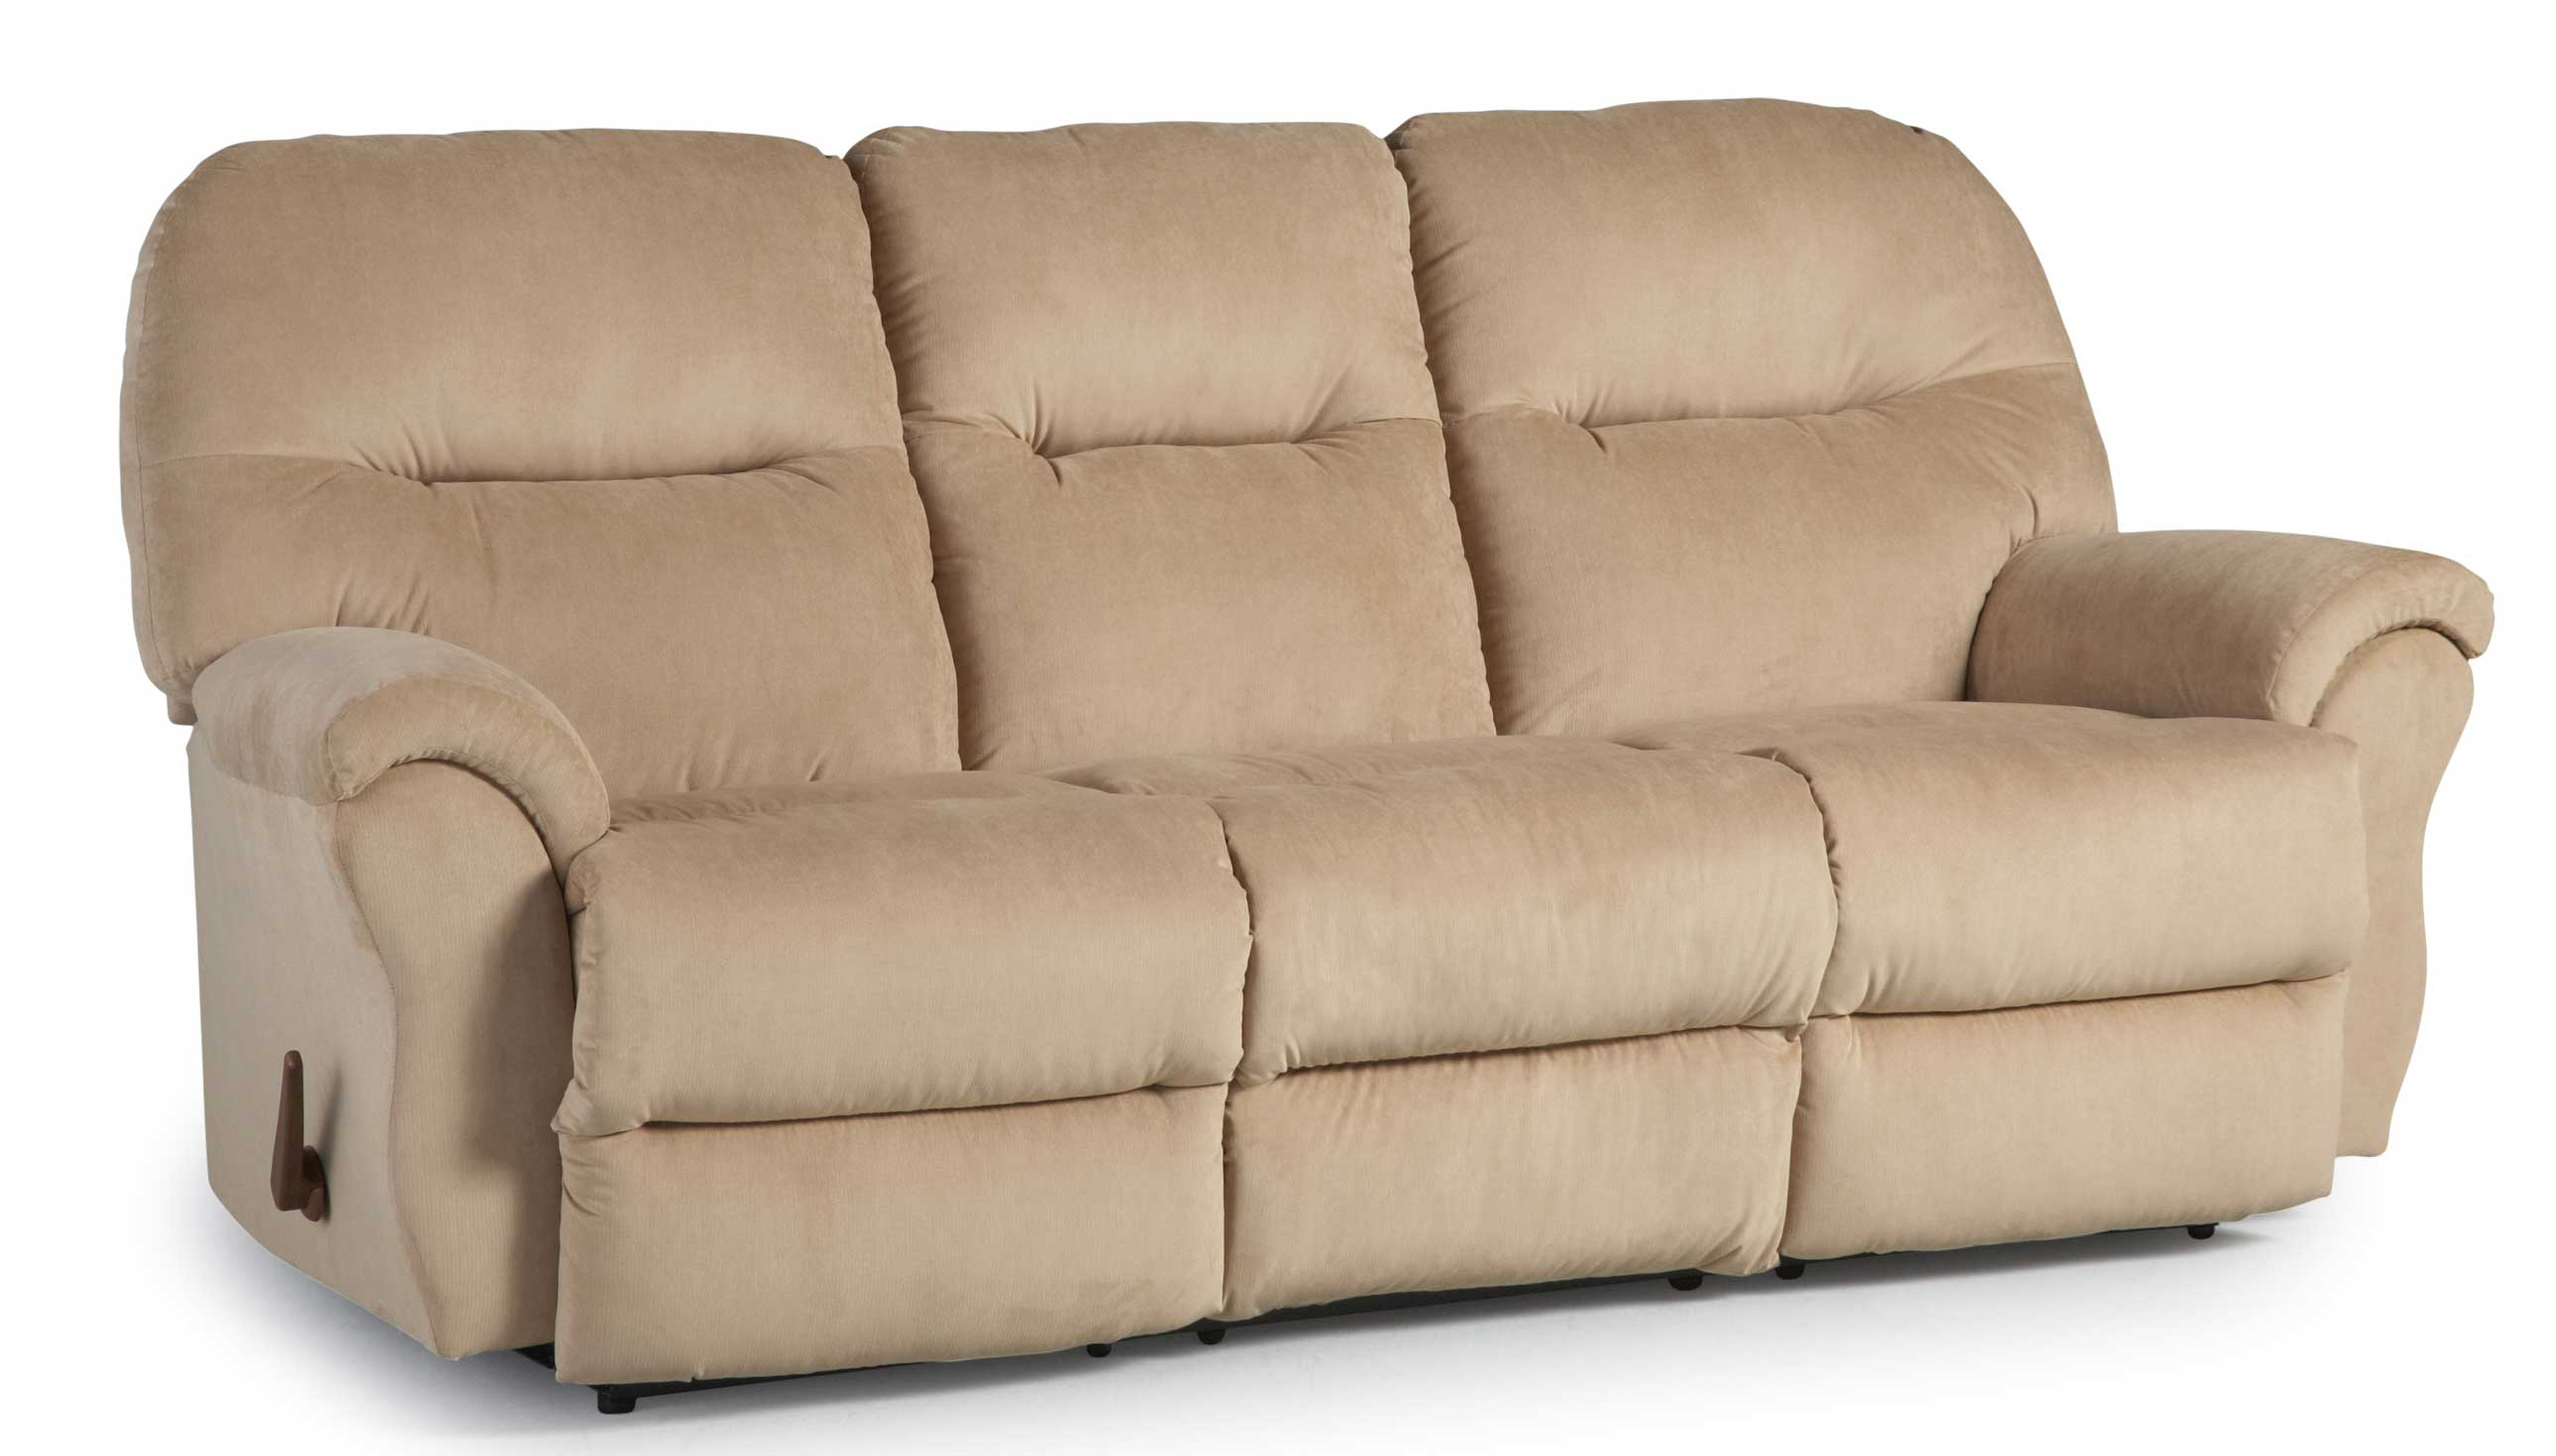 Best Bodie Reclining Sofa - Jasen\'s Fine Furniture- Since 1951